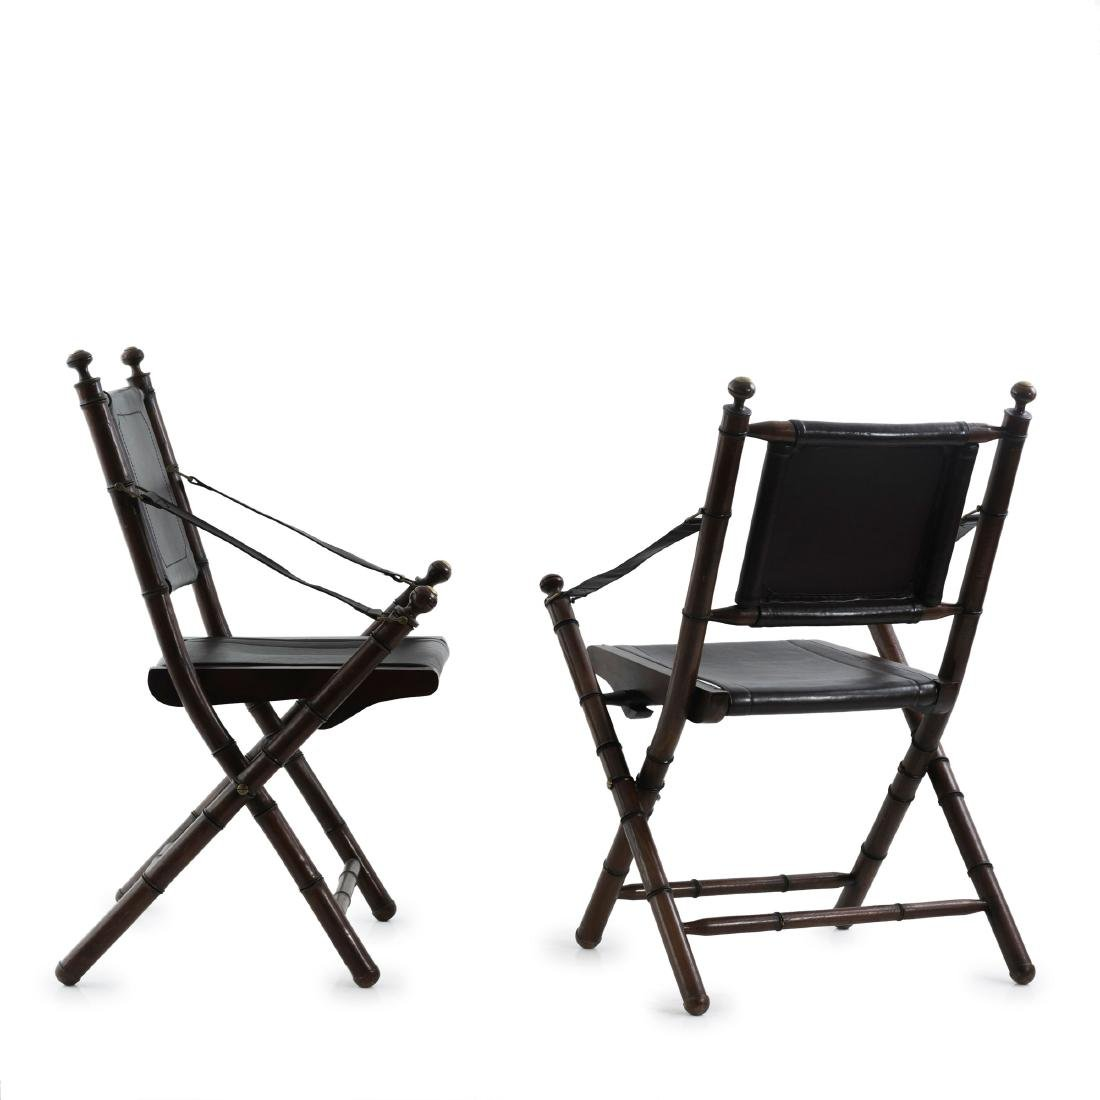 Two folding chairs, 1930/40s